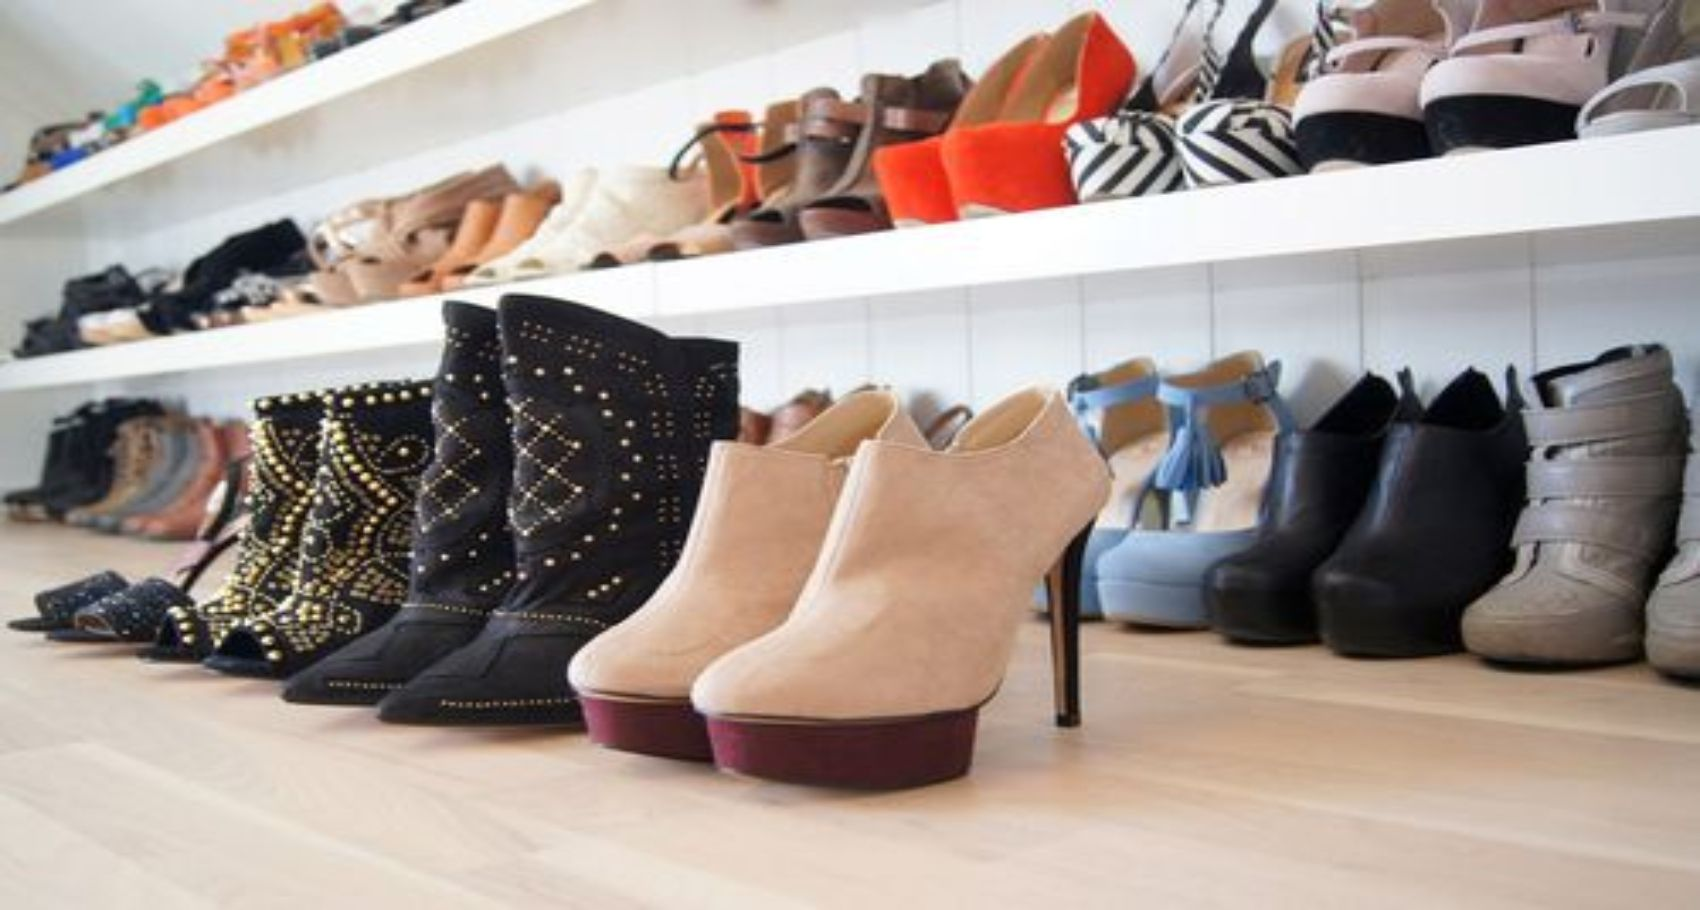 Color Us Jealous: 10 Shoes More Expensive Than Our Rent